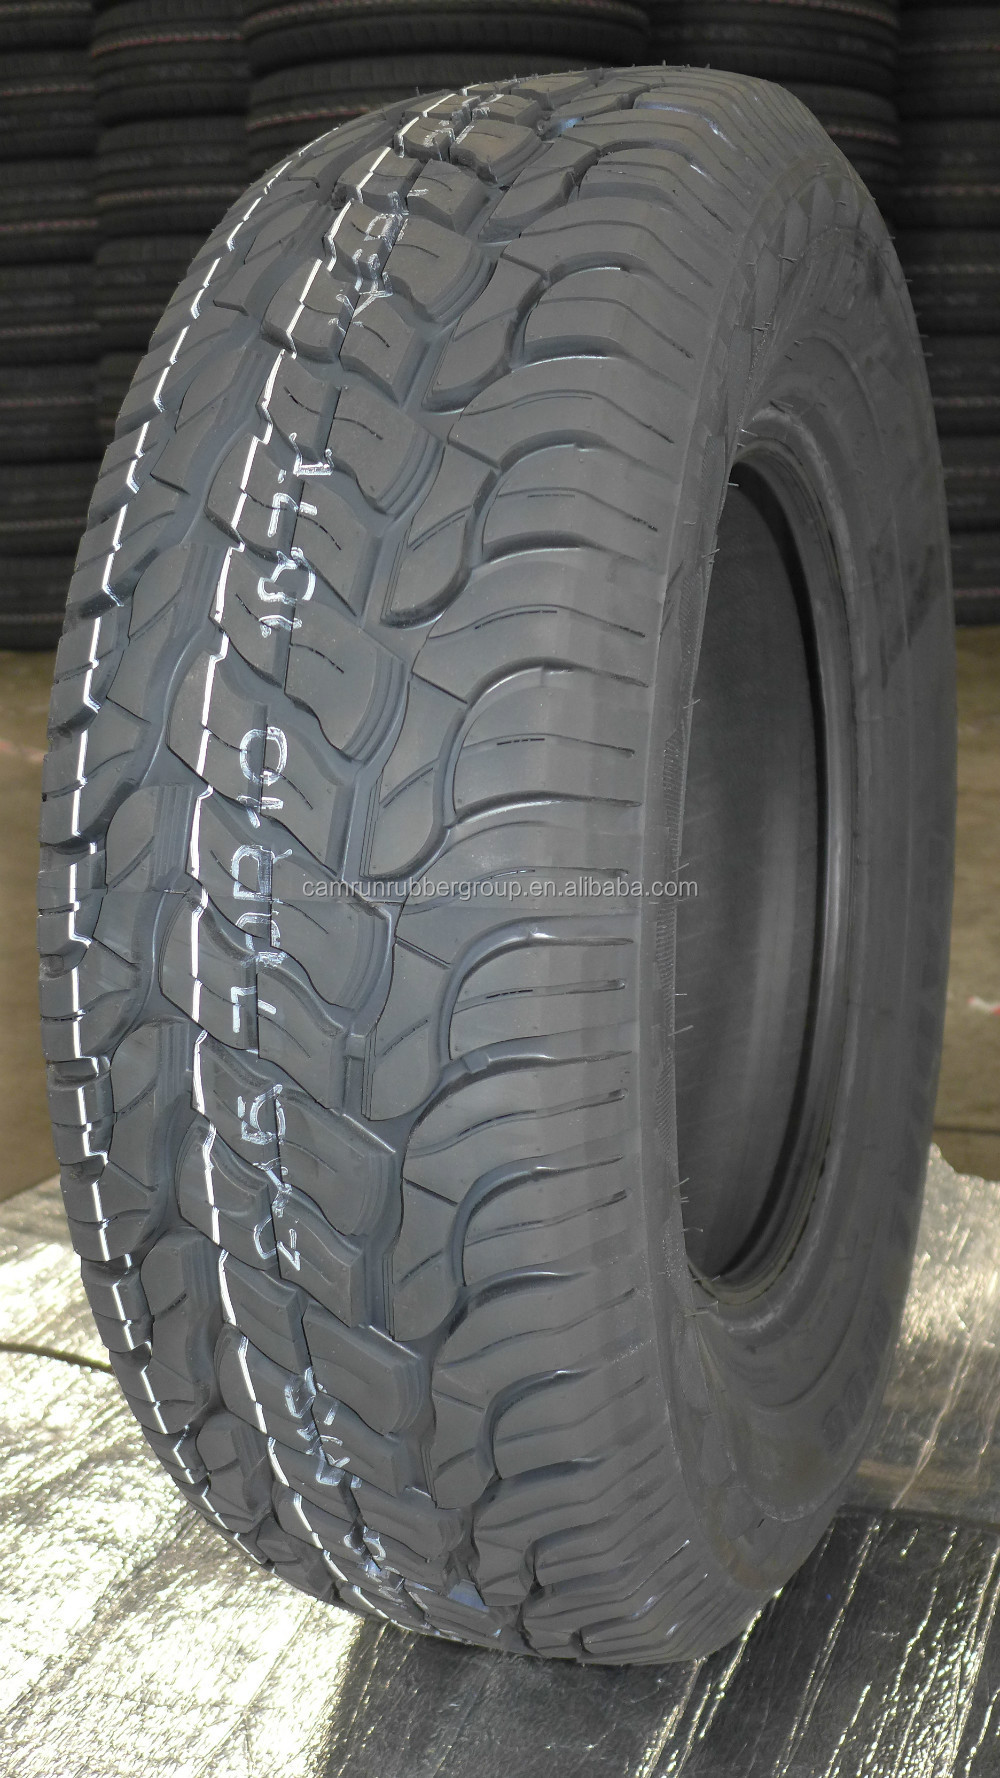 Goform Brand 225/65r17 Radial Suv Tyres Gt02 For 4x4 Car Tires ...